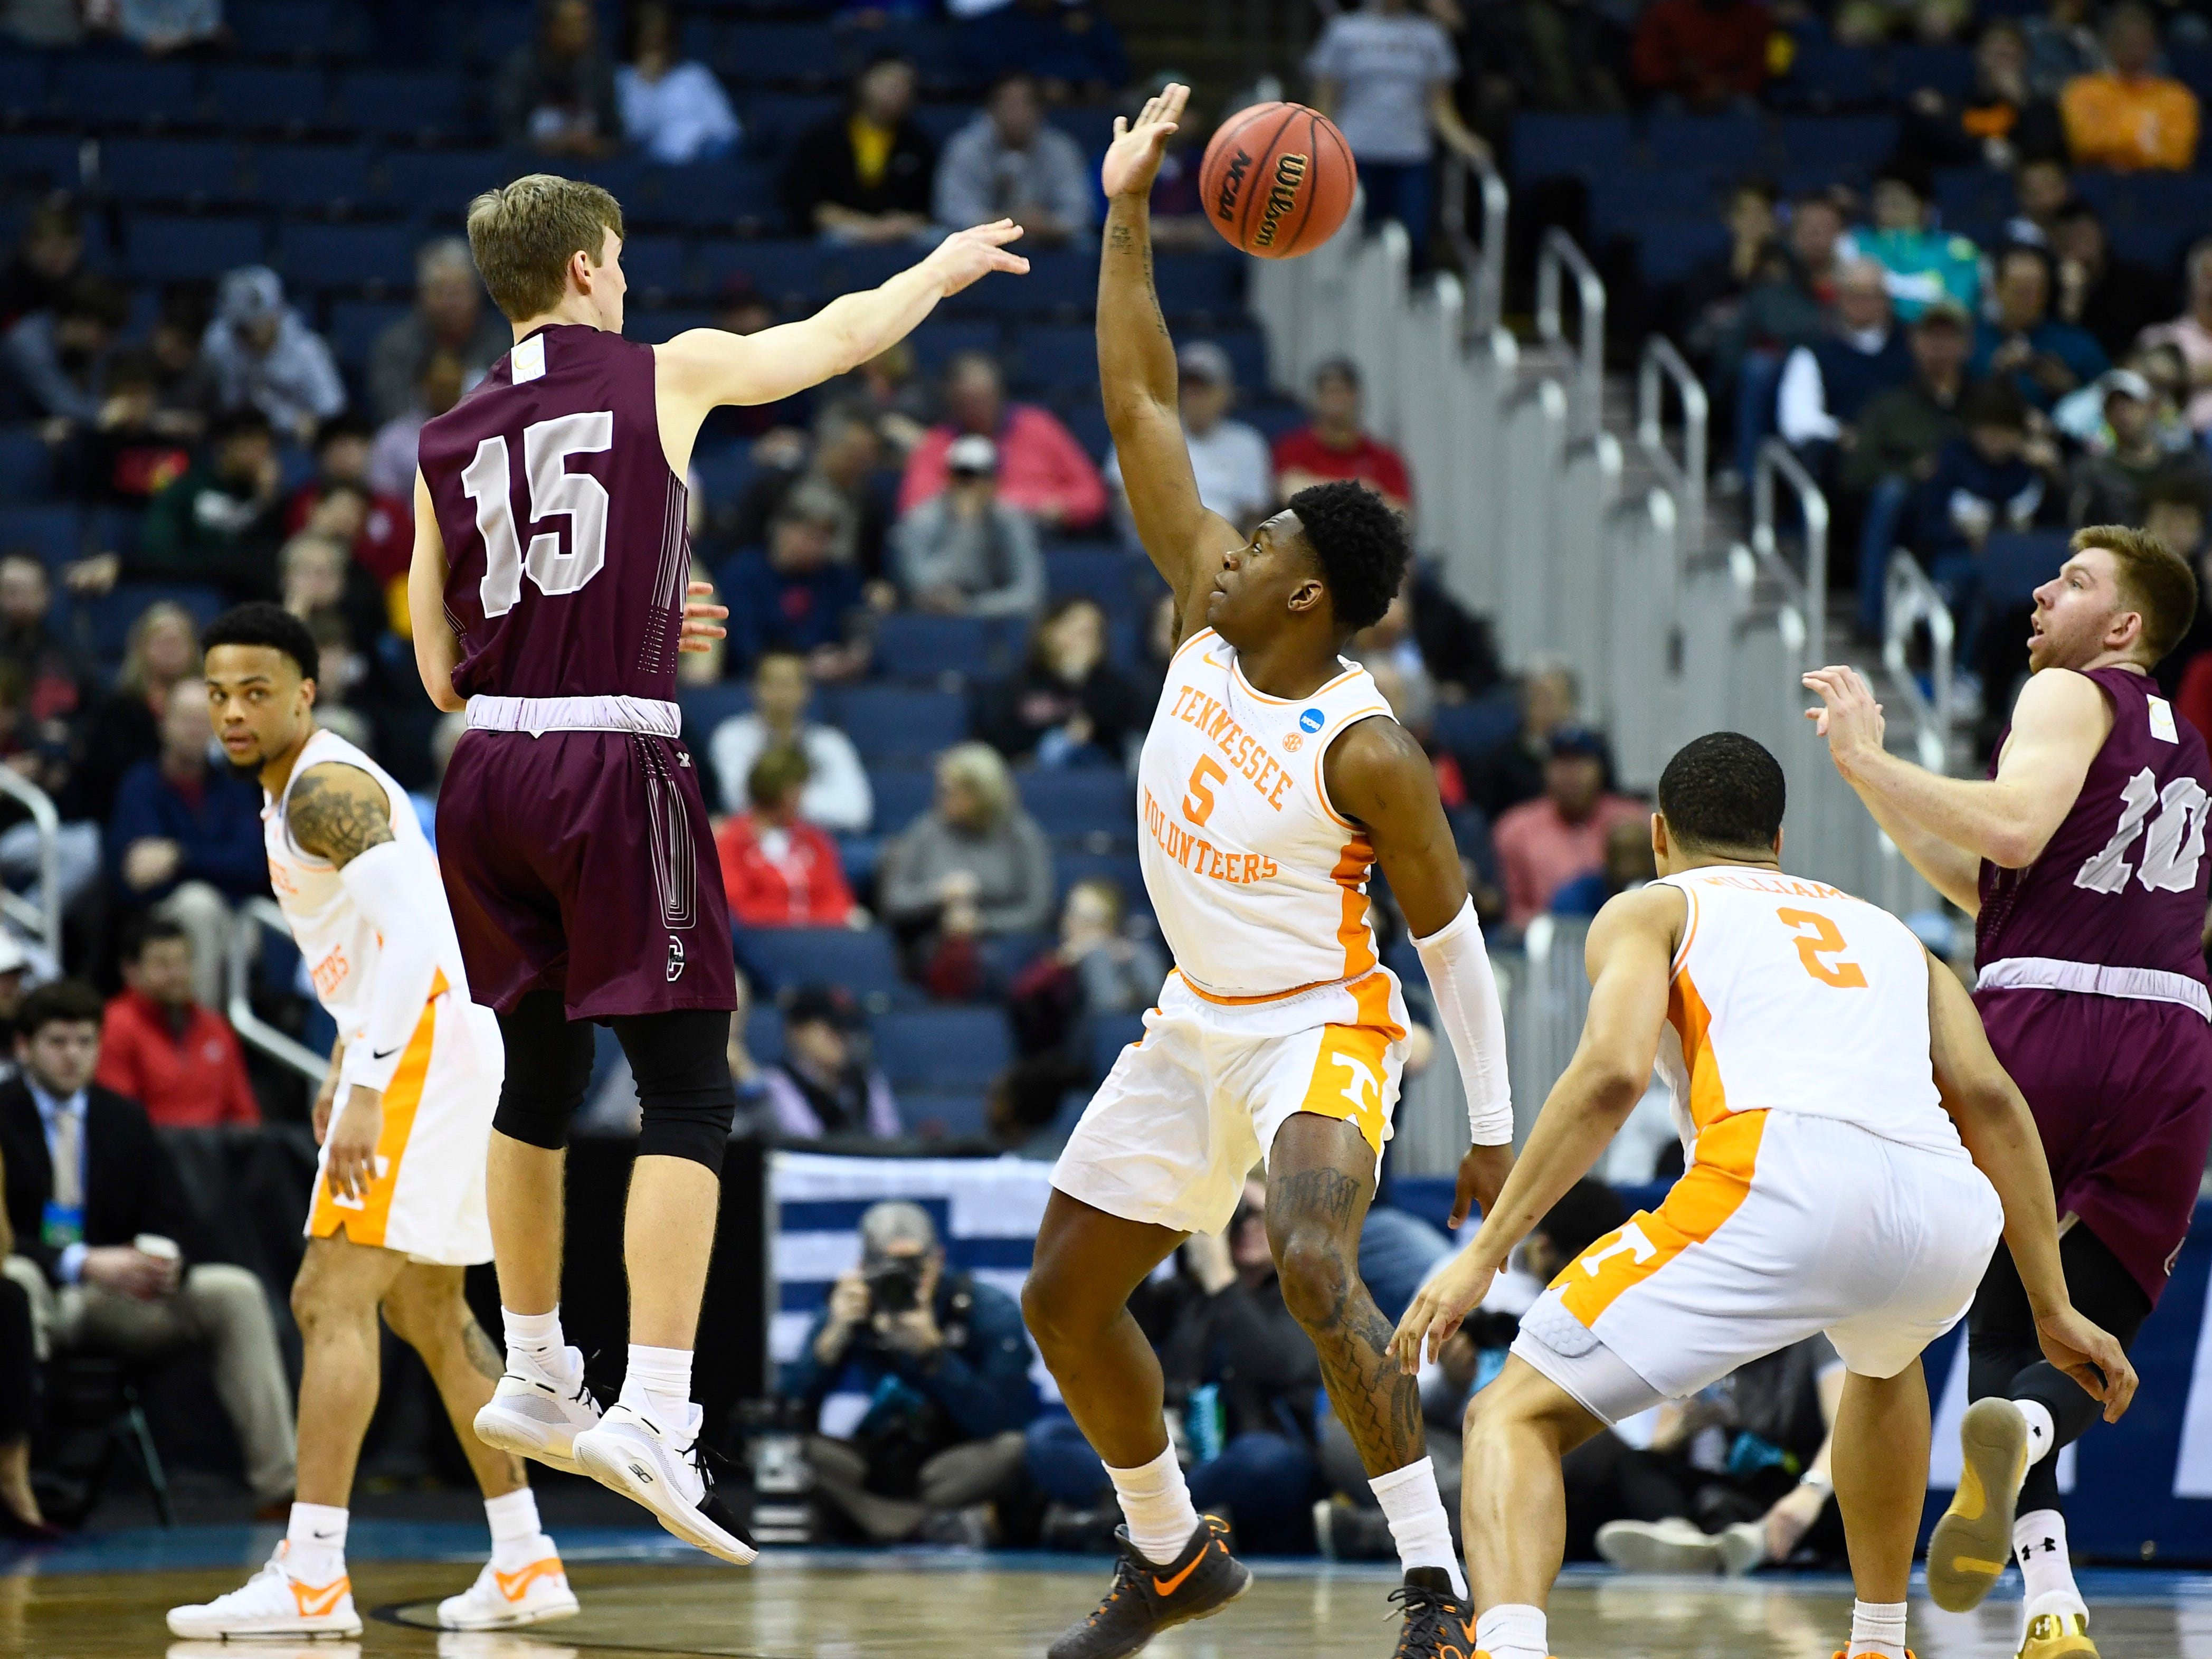 Tennessee guard Admiral Schofield (5) guards Colgate guard Tucker Richardson (15) during their first round game in the NCAA Tournament at Nationwide Arena in Columbus, Ohio, on Friday, March 22, 2019.